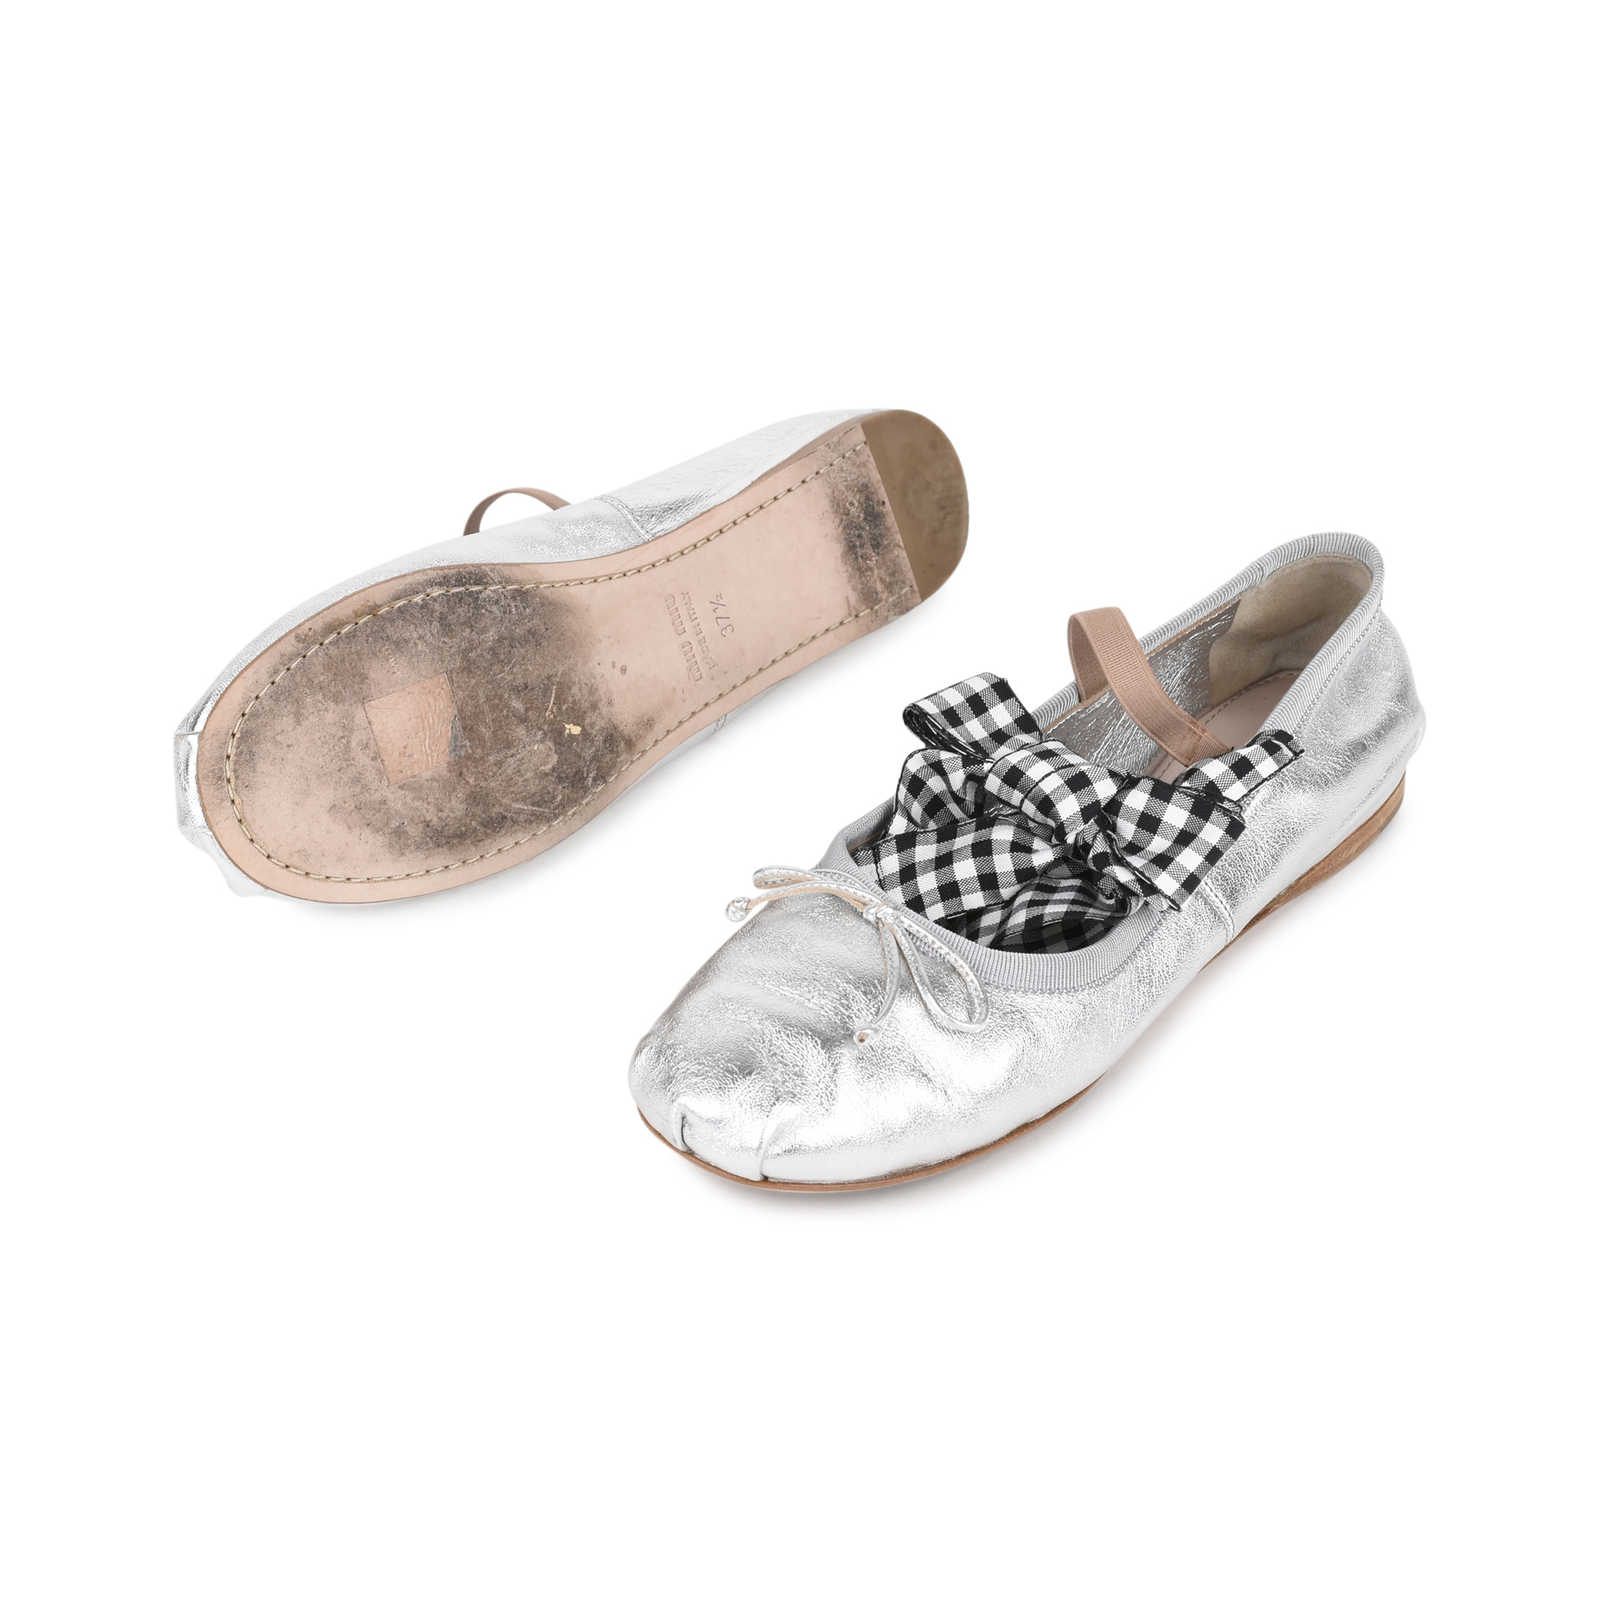 fcafaf57587 ... Authentic Second Hand Miu Miu Lace-Up Ballet Flats (PSS-200-01133 ...